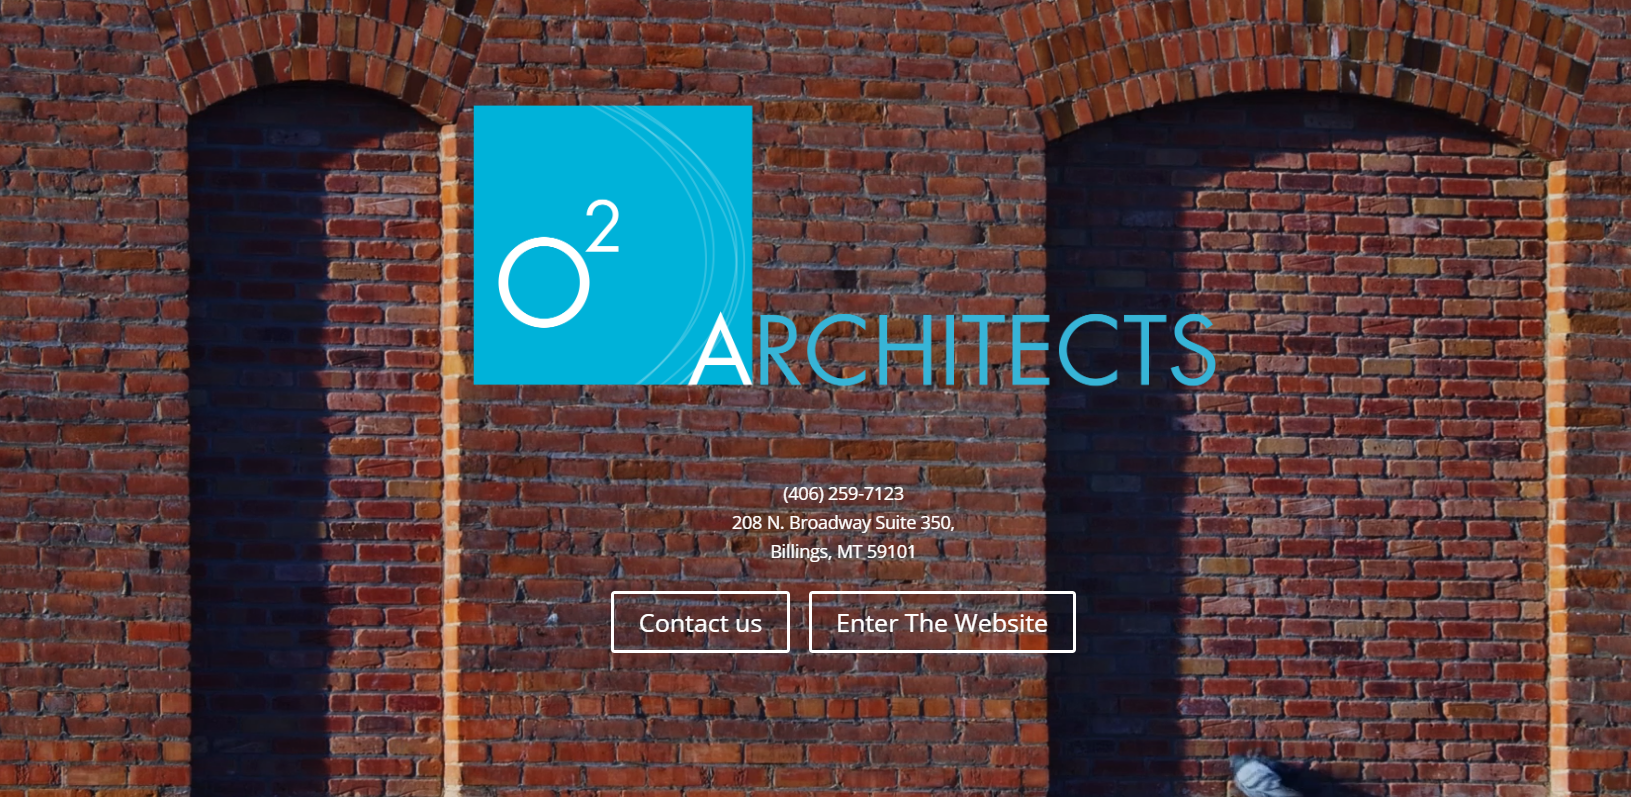 o2 Architects website design by SkyPoint Studios